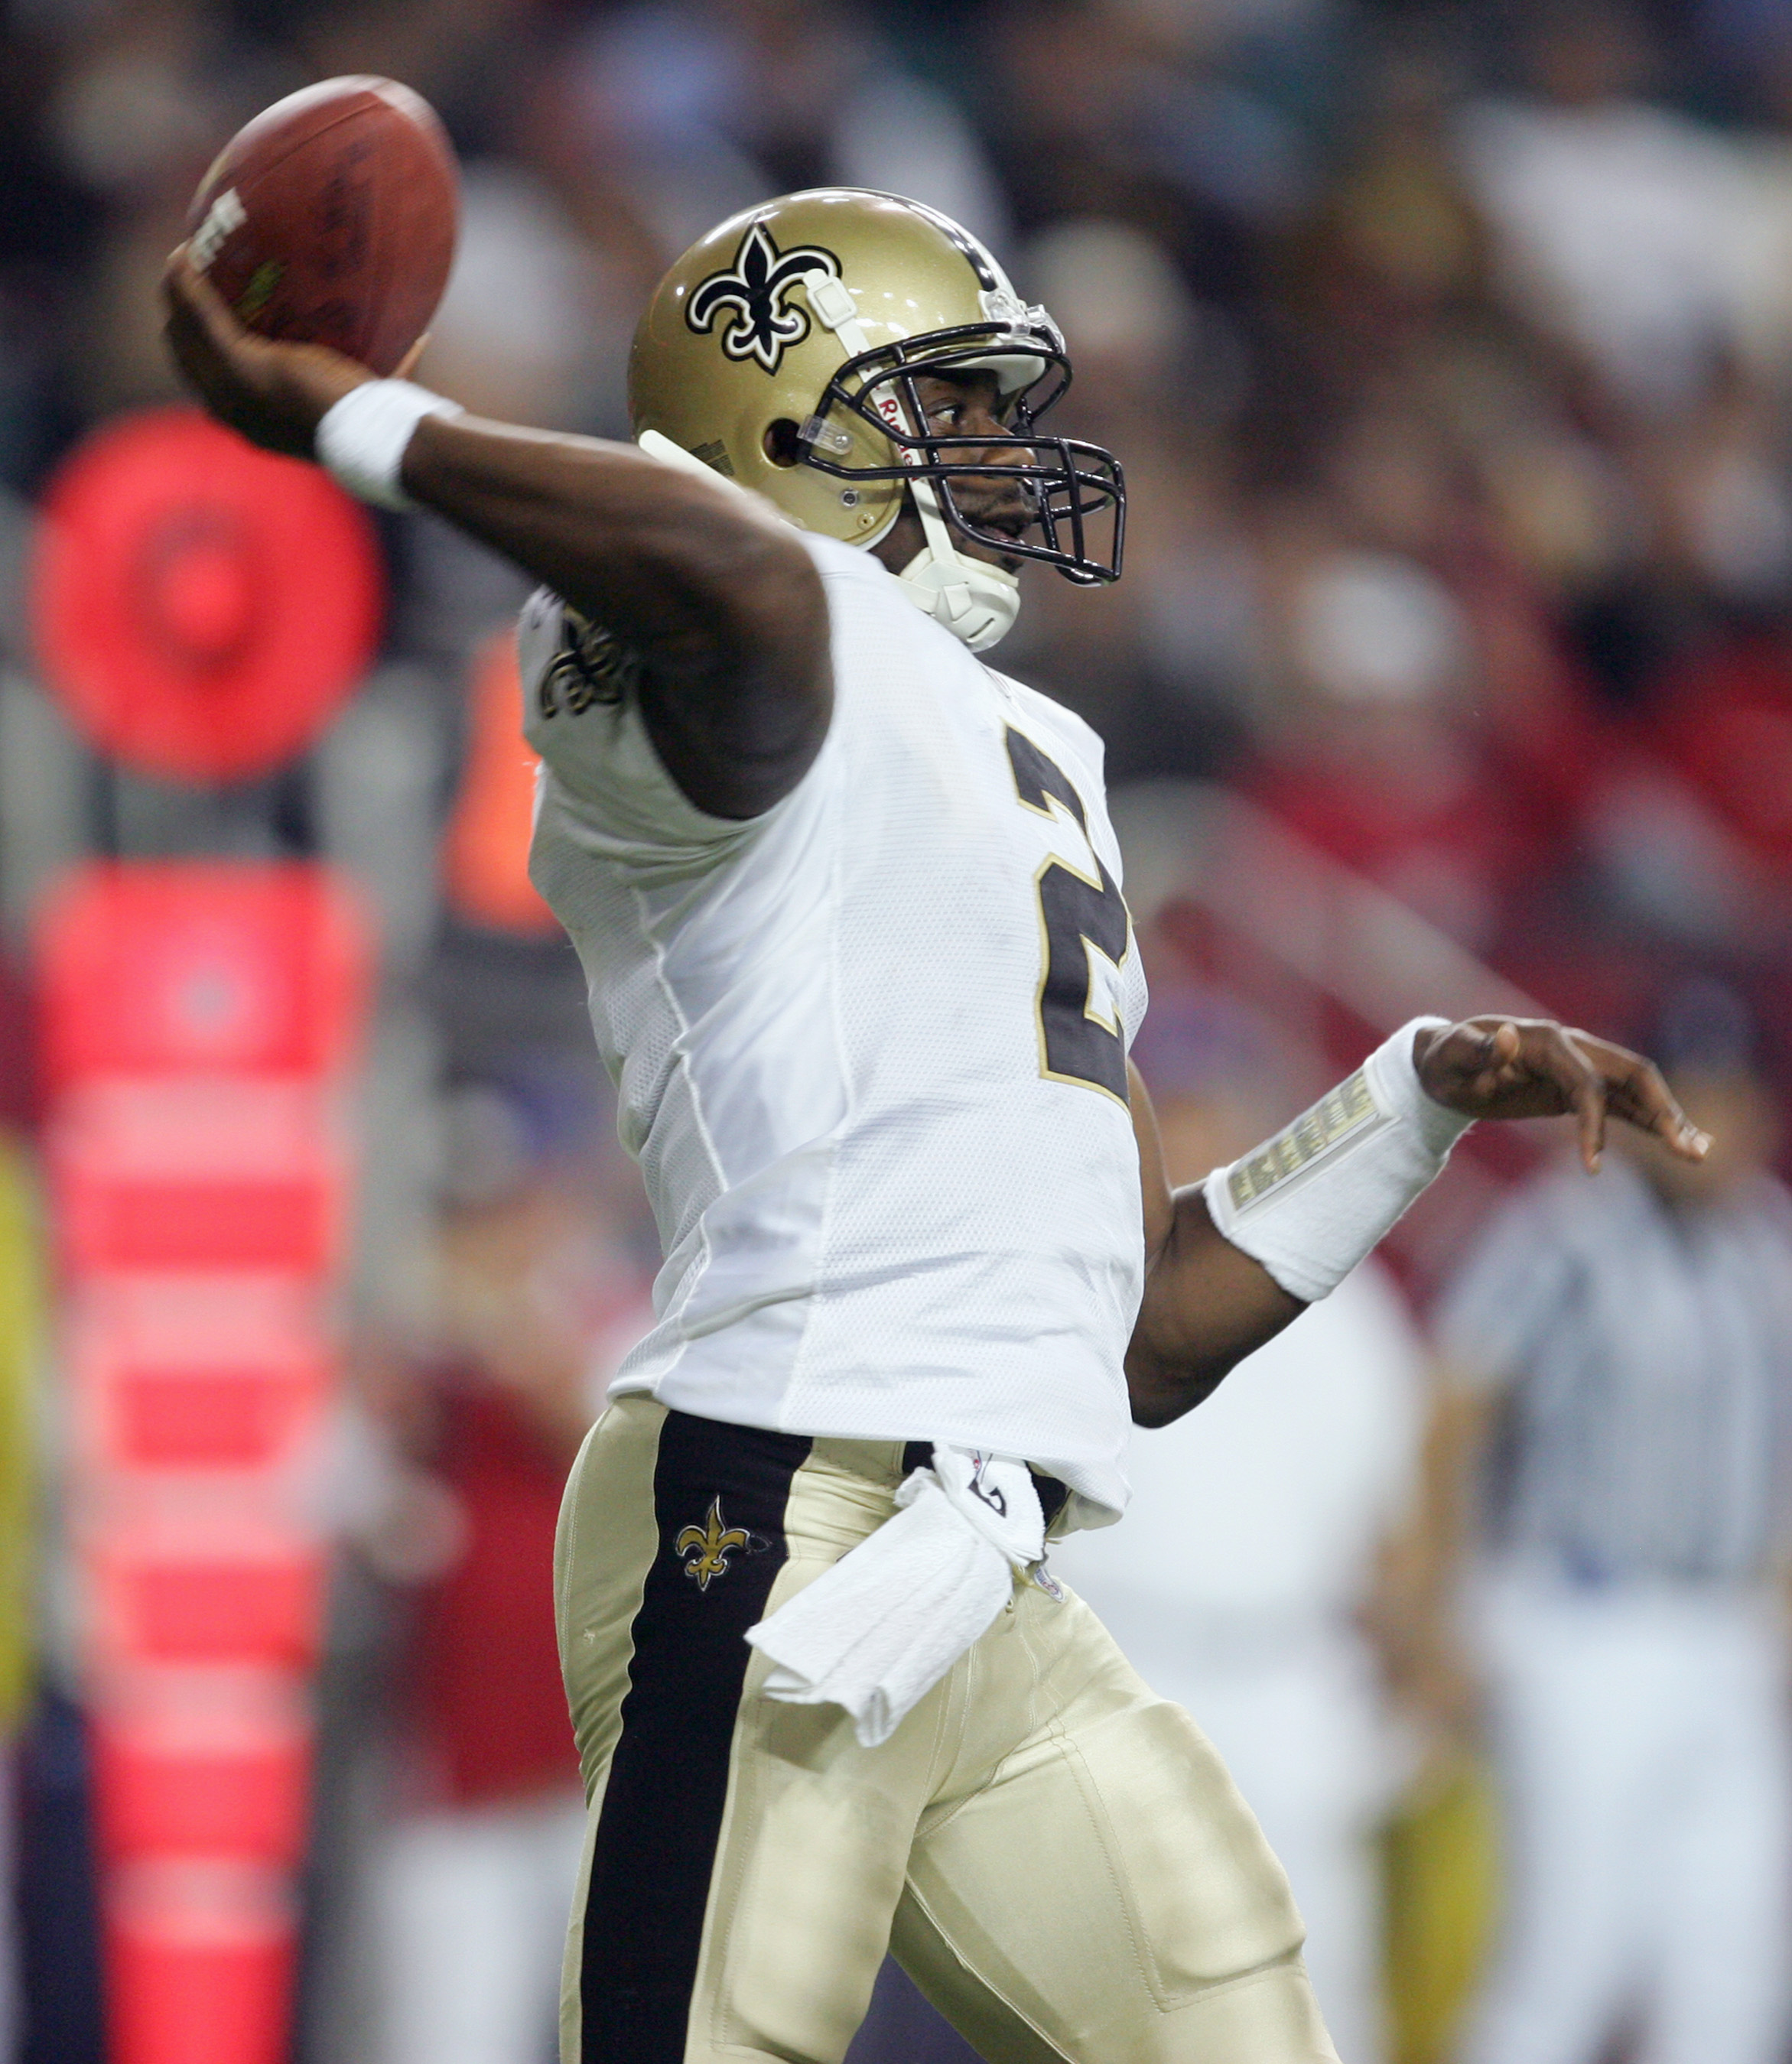 ATLANTA - DECEMBER 12:  Quarterback Aaron Brooks #2 of the New Orleans Saints passes the ball during the game against the Atlanta Falcons on December 12, 2005 at the Georgia Dome in Atlanta, Georgia.  (Photo By Streeter Lecka)